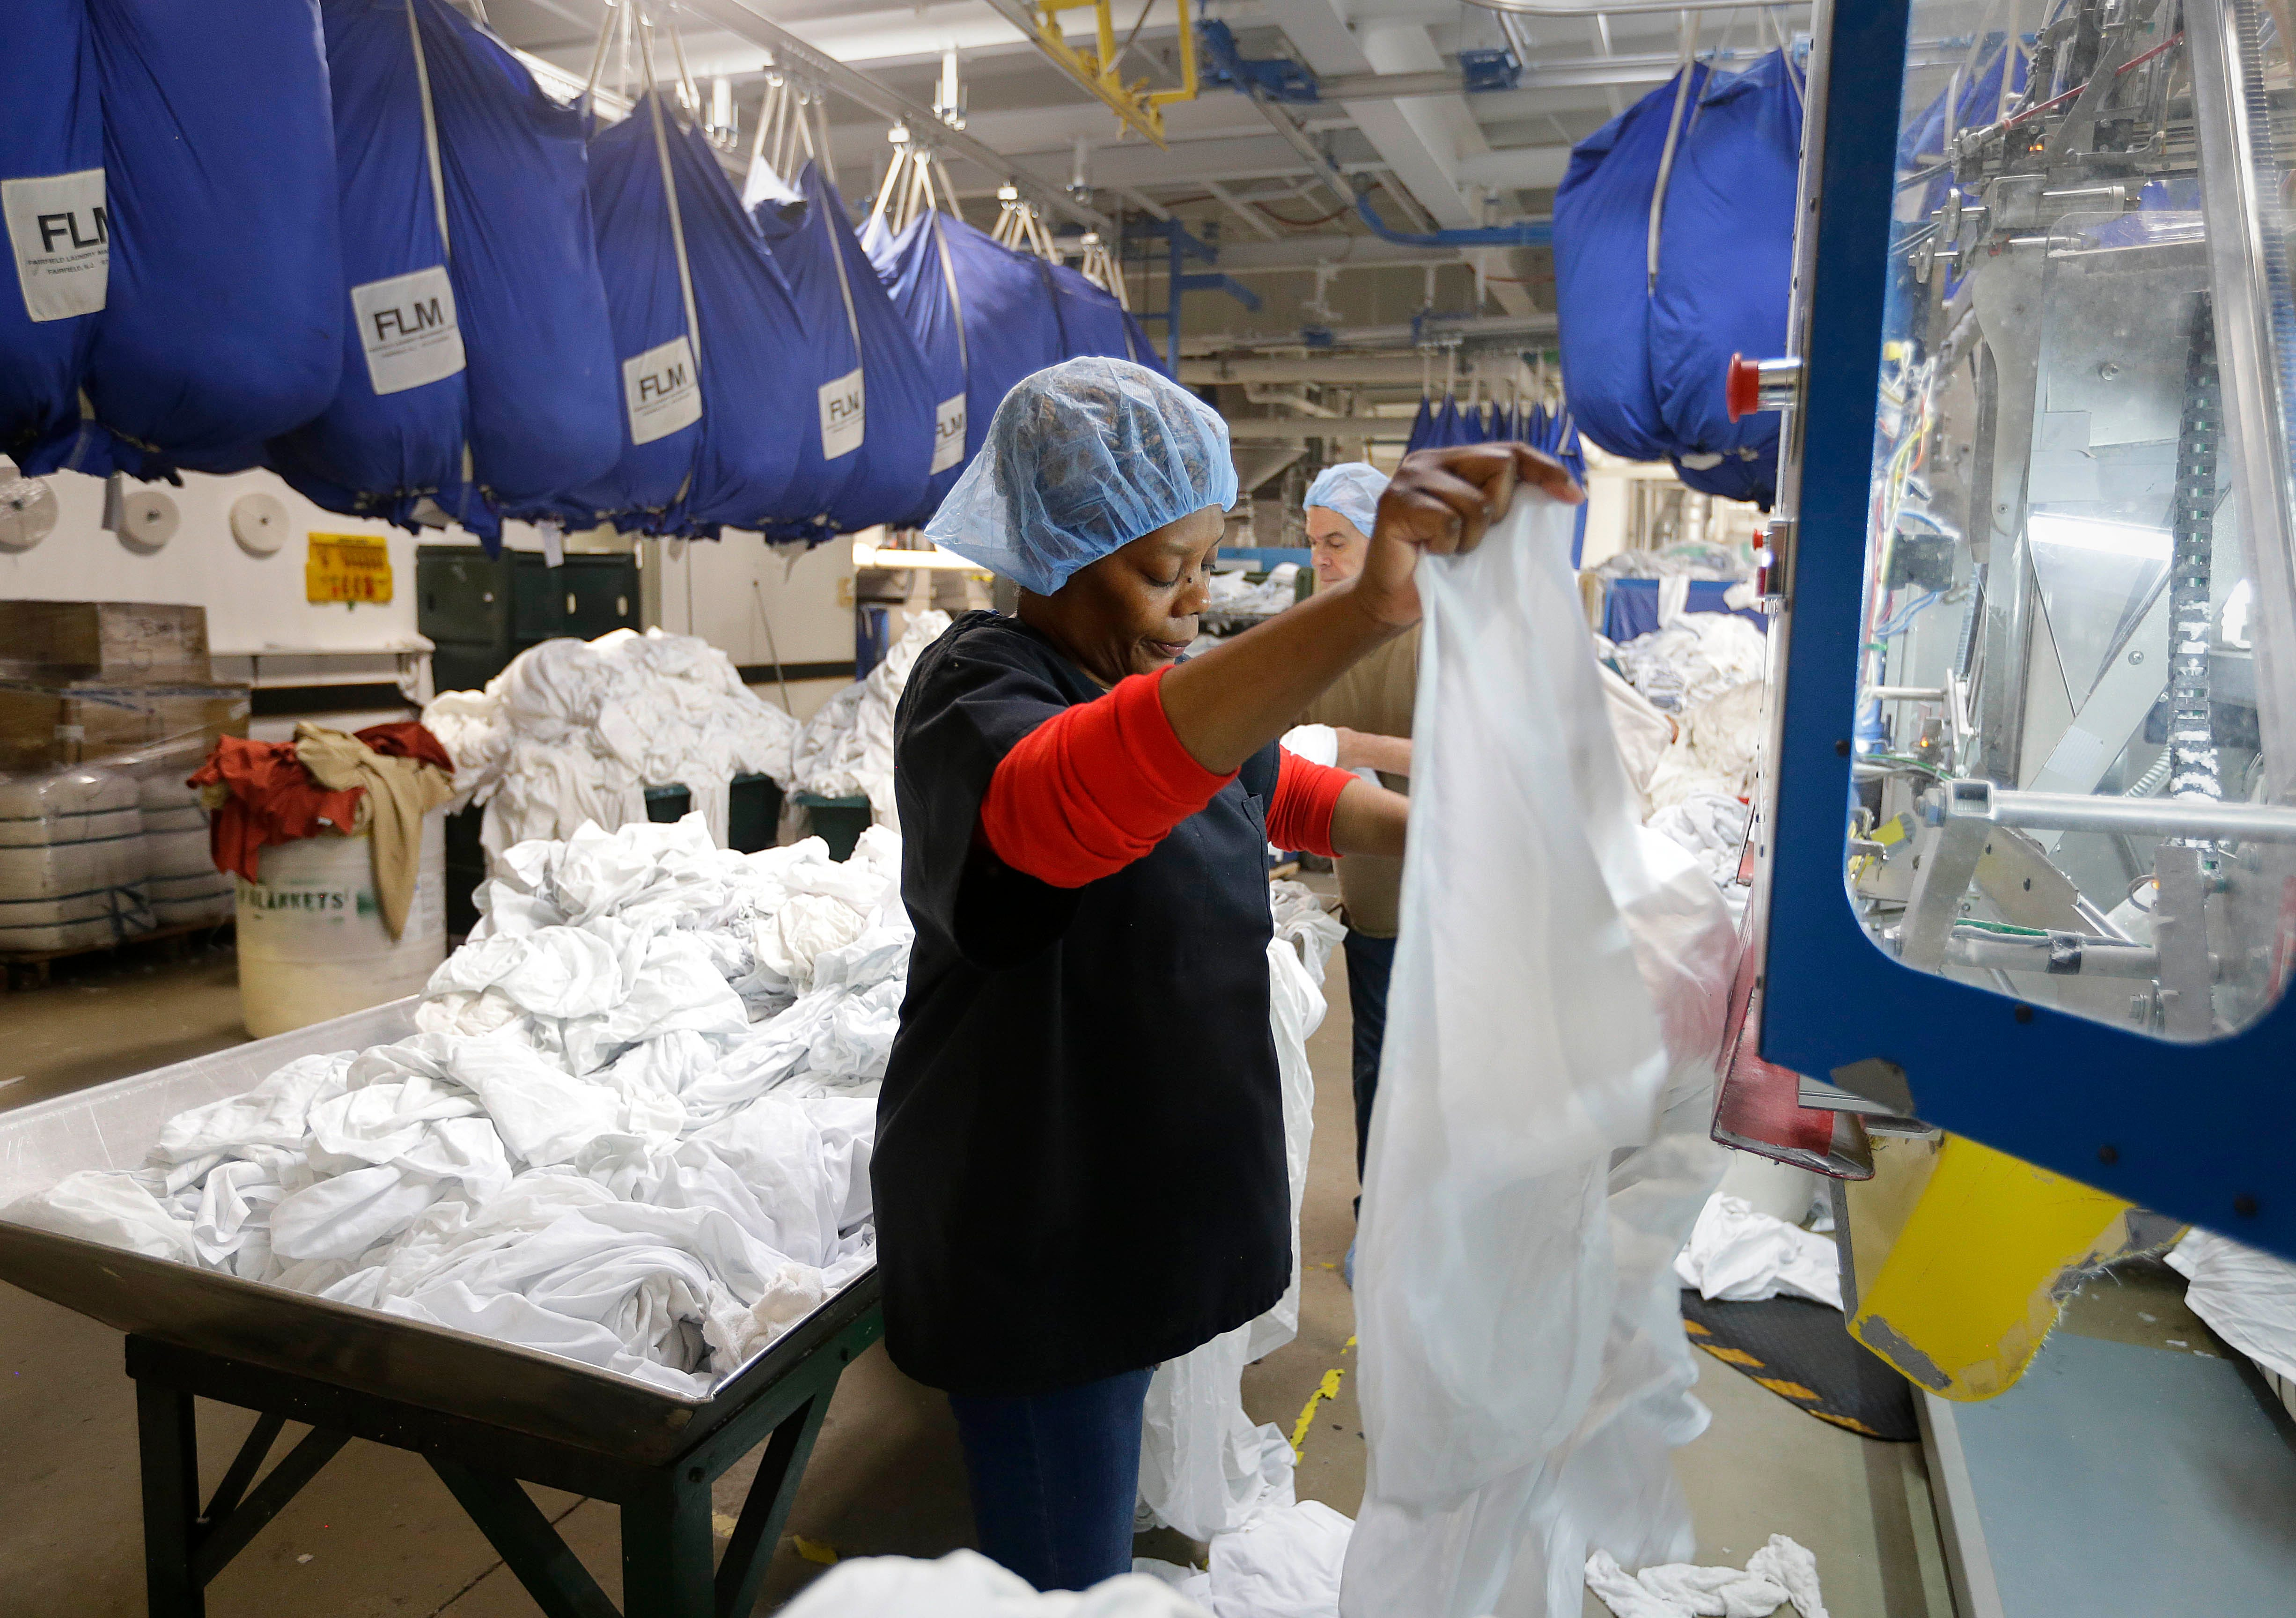 A worker places damp sheets on a drying and folding machine at  The Evergreen Cooperative Laundry in Cleveland.